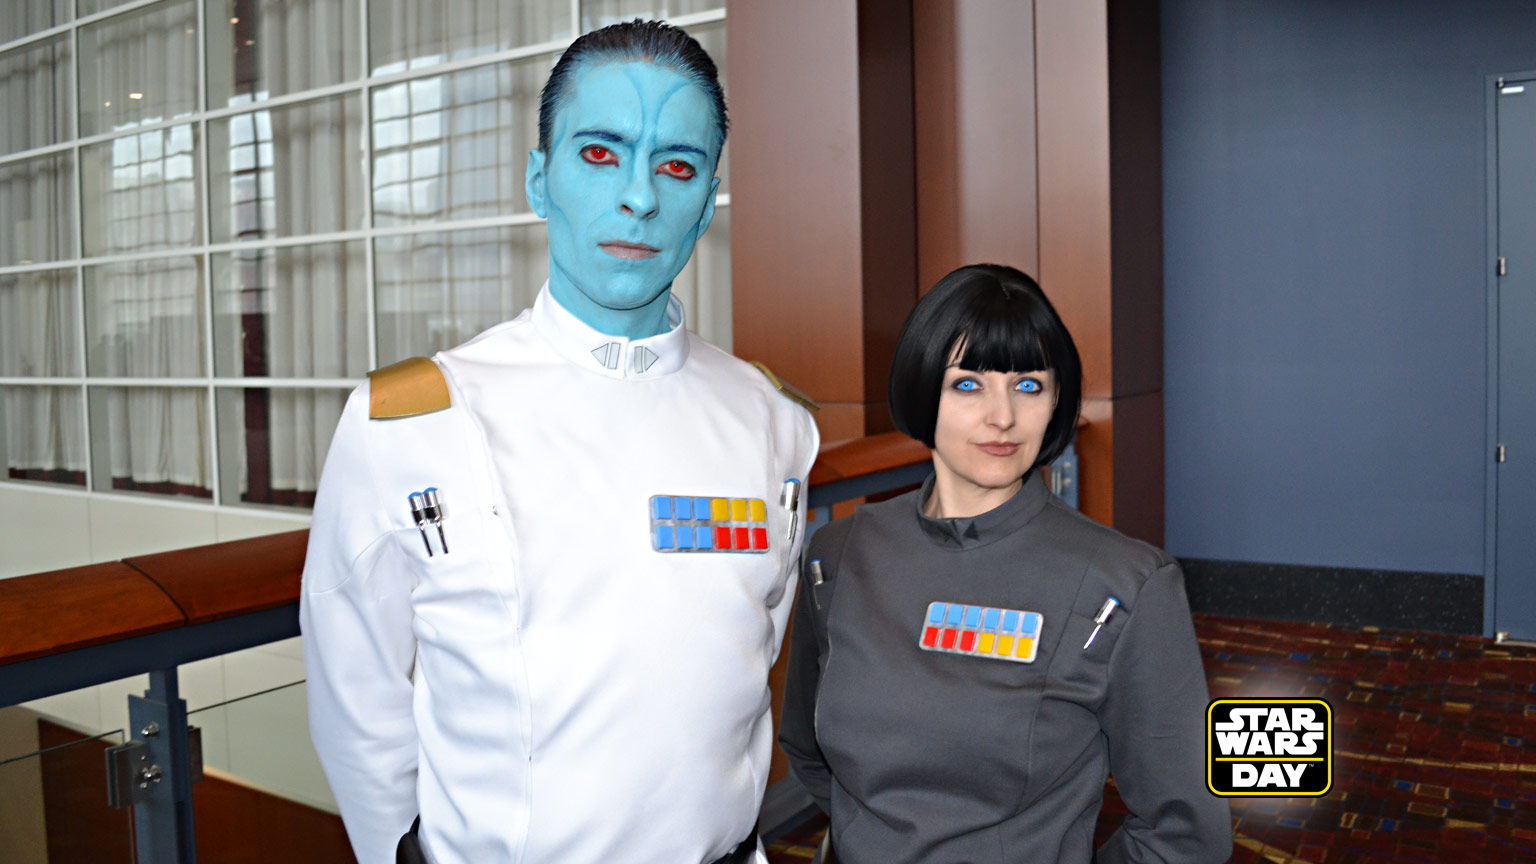 Star Wars fans Ashe and Jake dressed as Thrawn and Pryce.